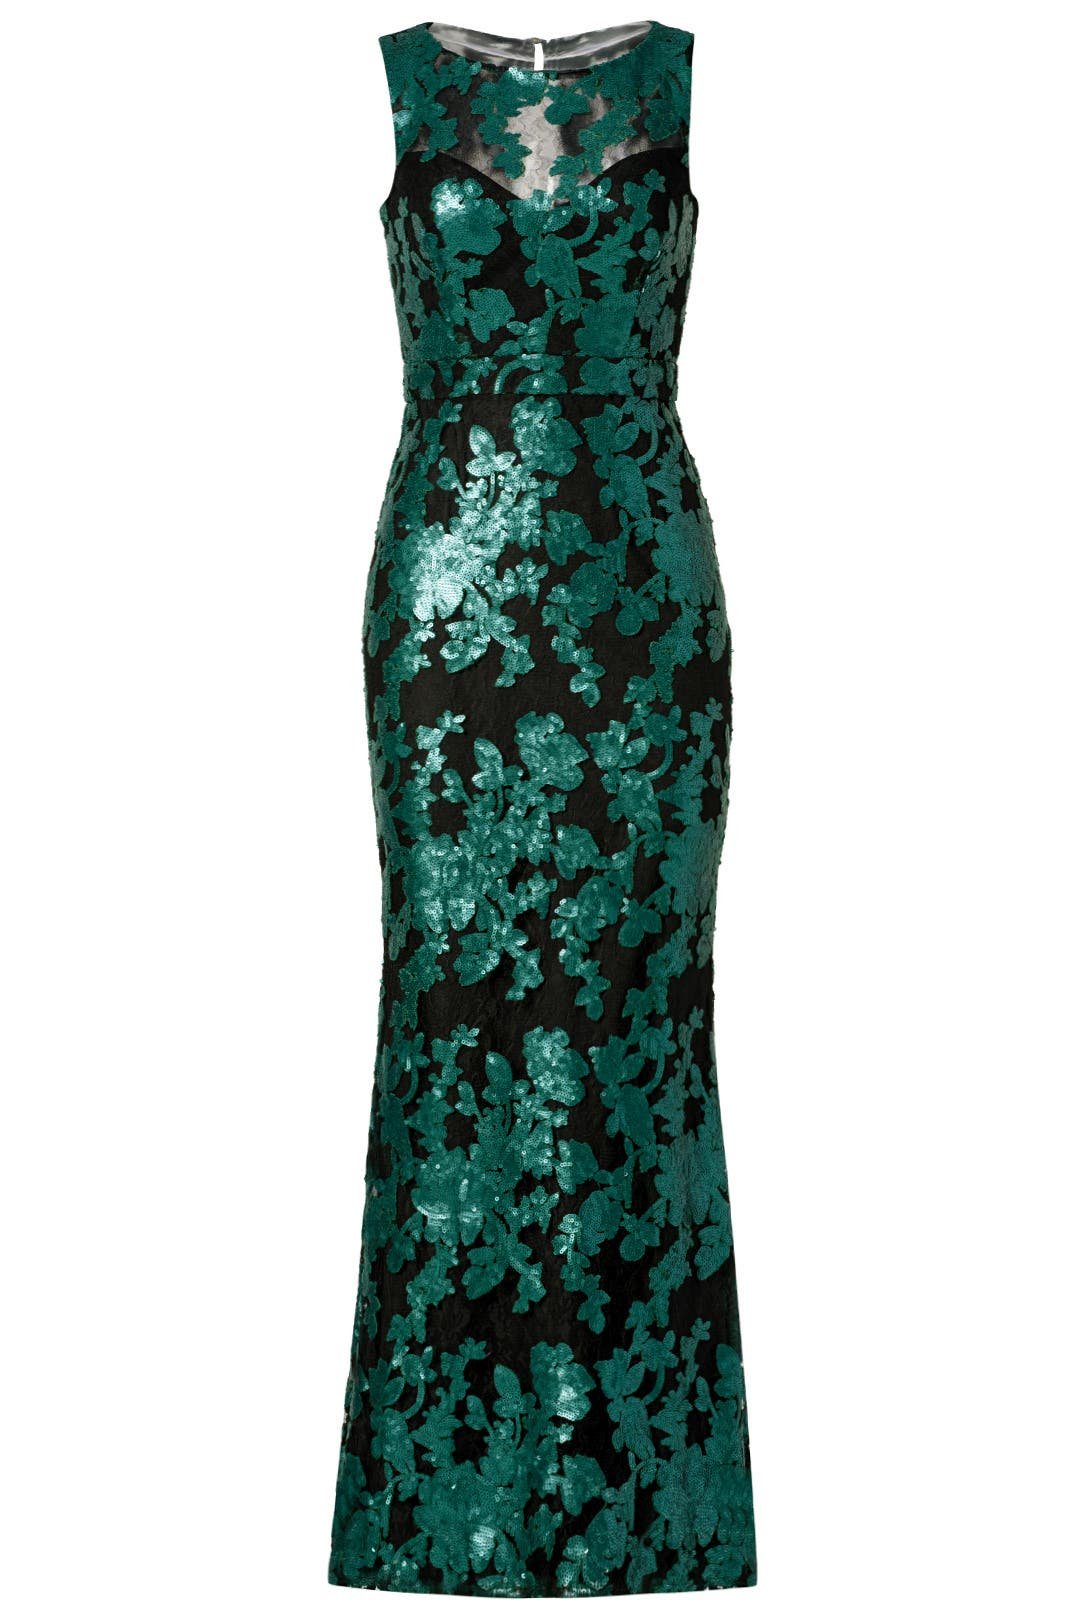 Ivy Gown by Badgley Mischka for $55 - $75 | Rent the Runway